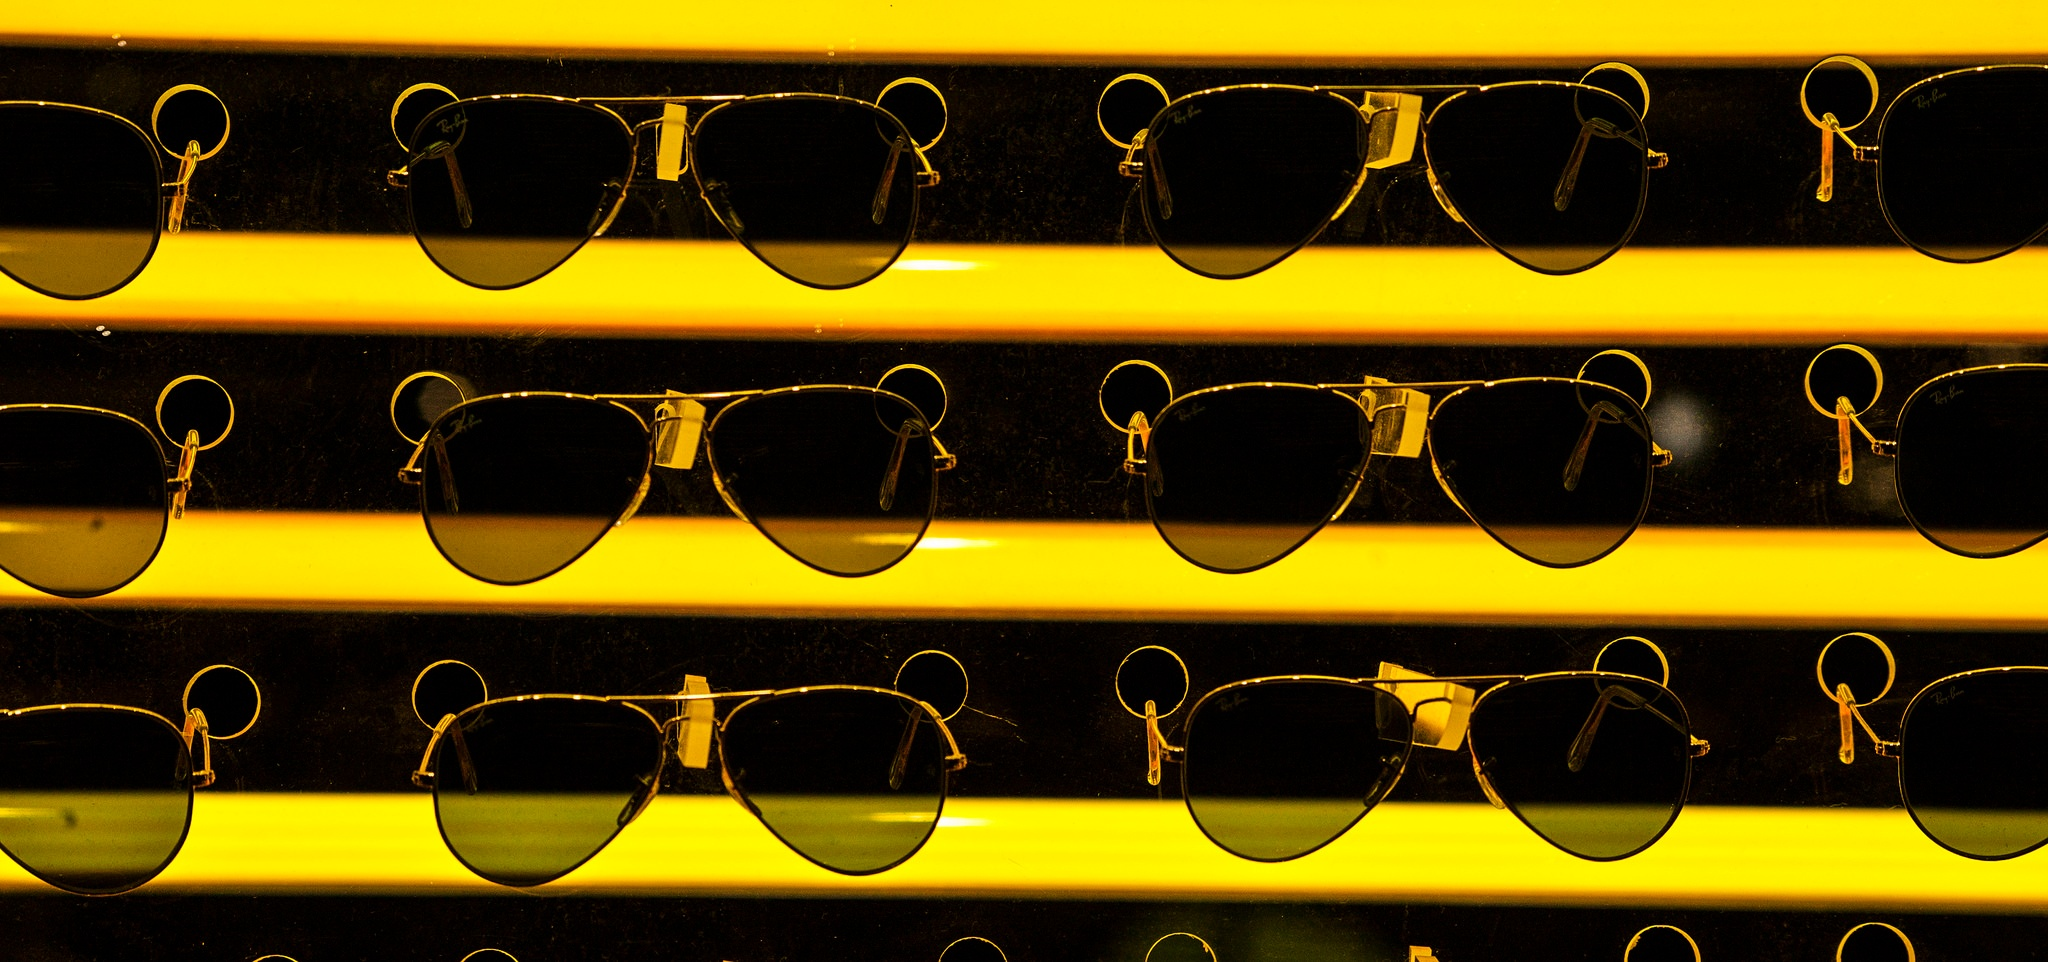 Counterfeit sunglasses and knock-off eyewear causes huge problems